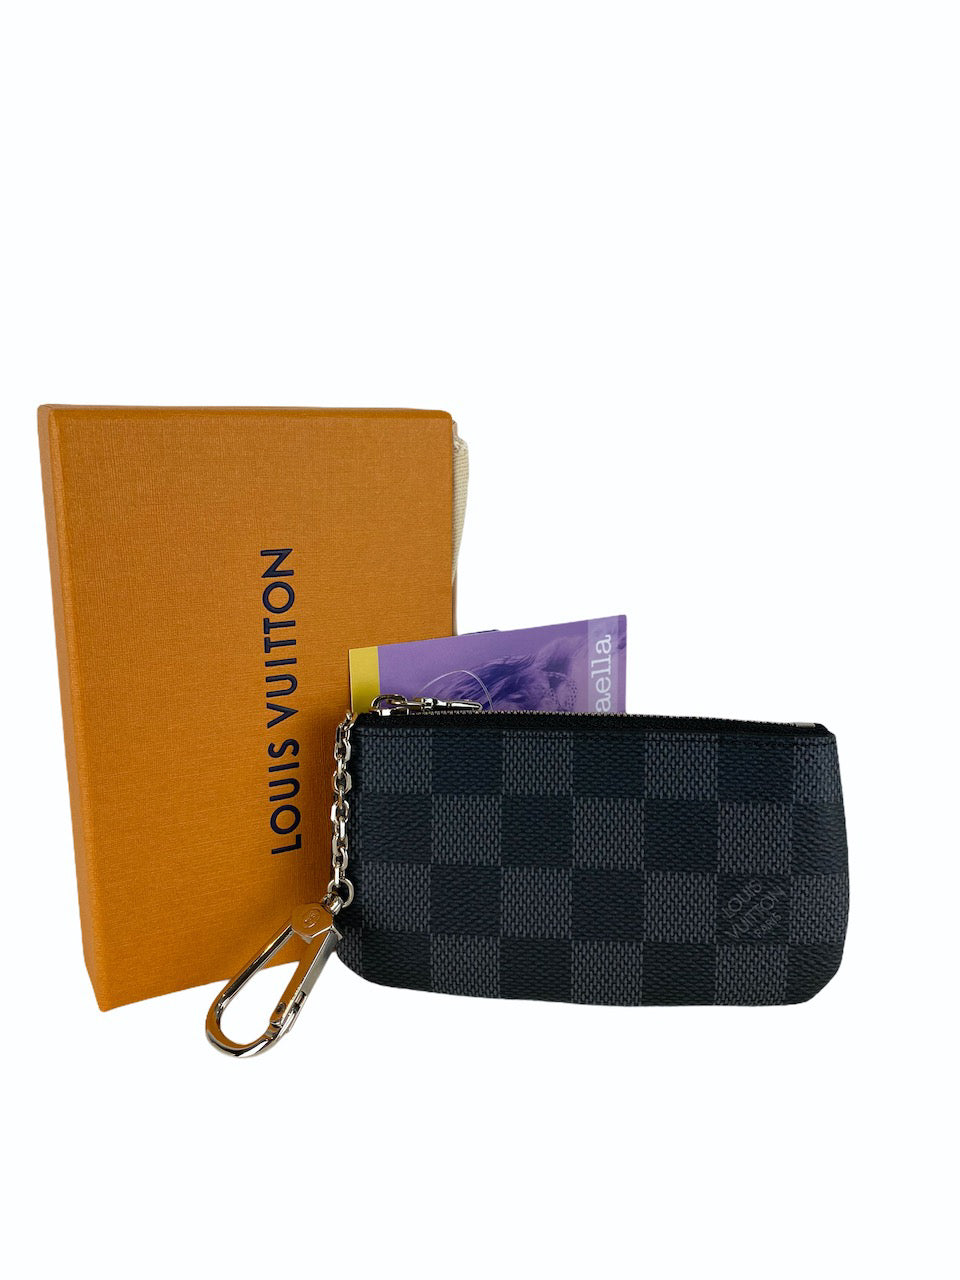 Louis Vuitton Damier Graphite Coin Purse - As Seen on Instagram 20/09/2020